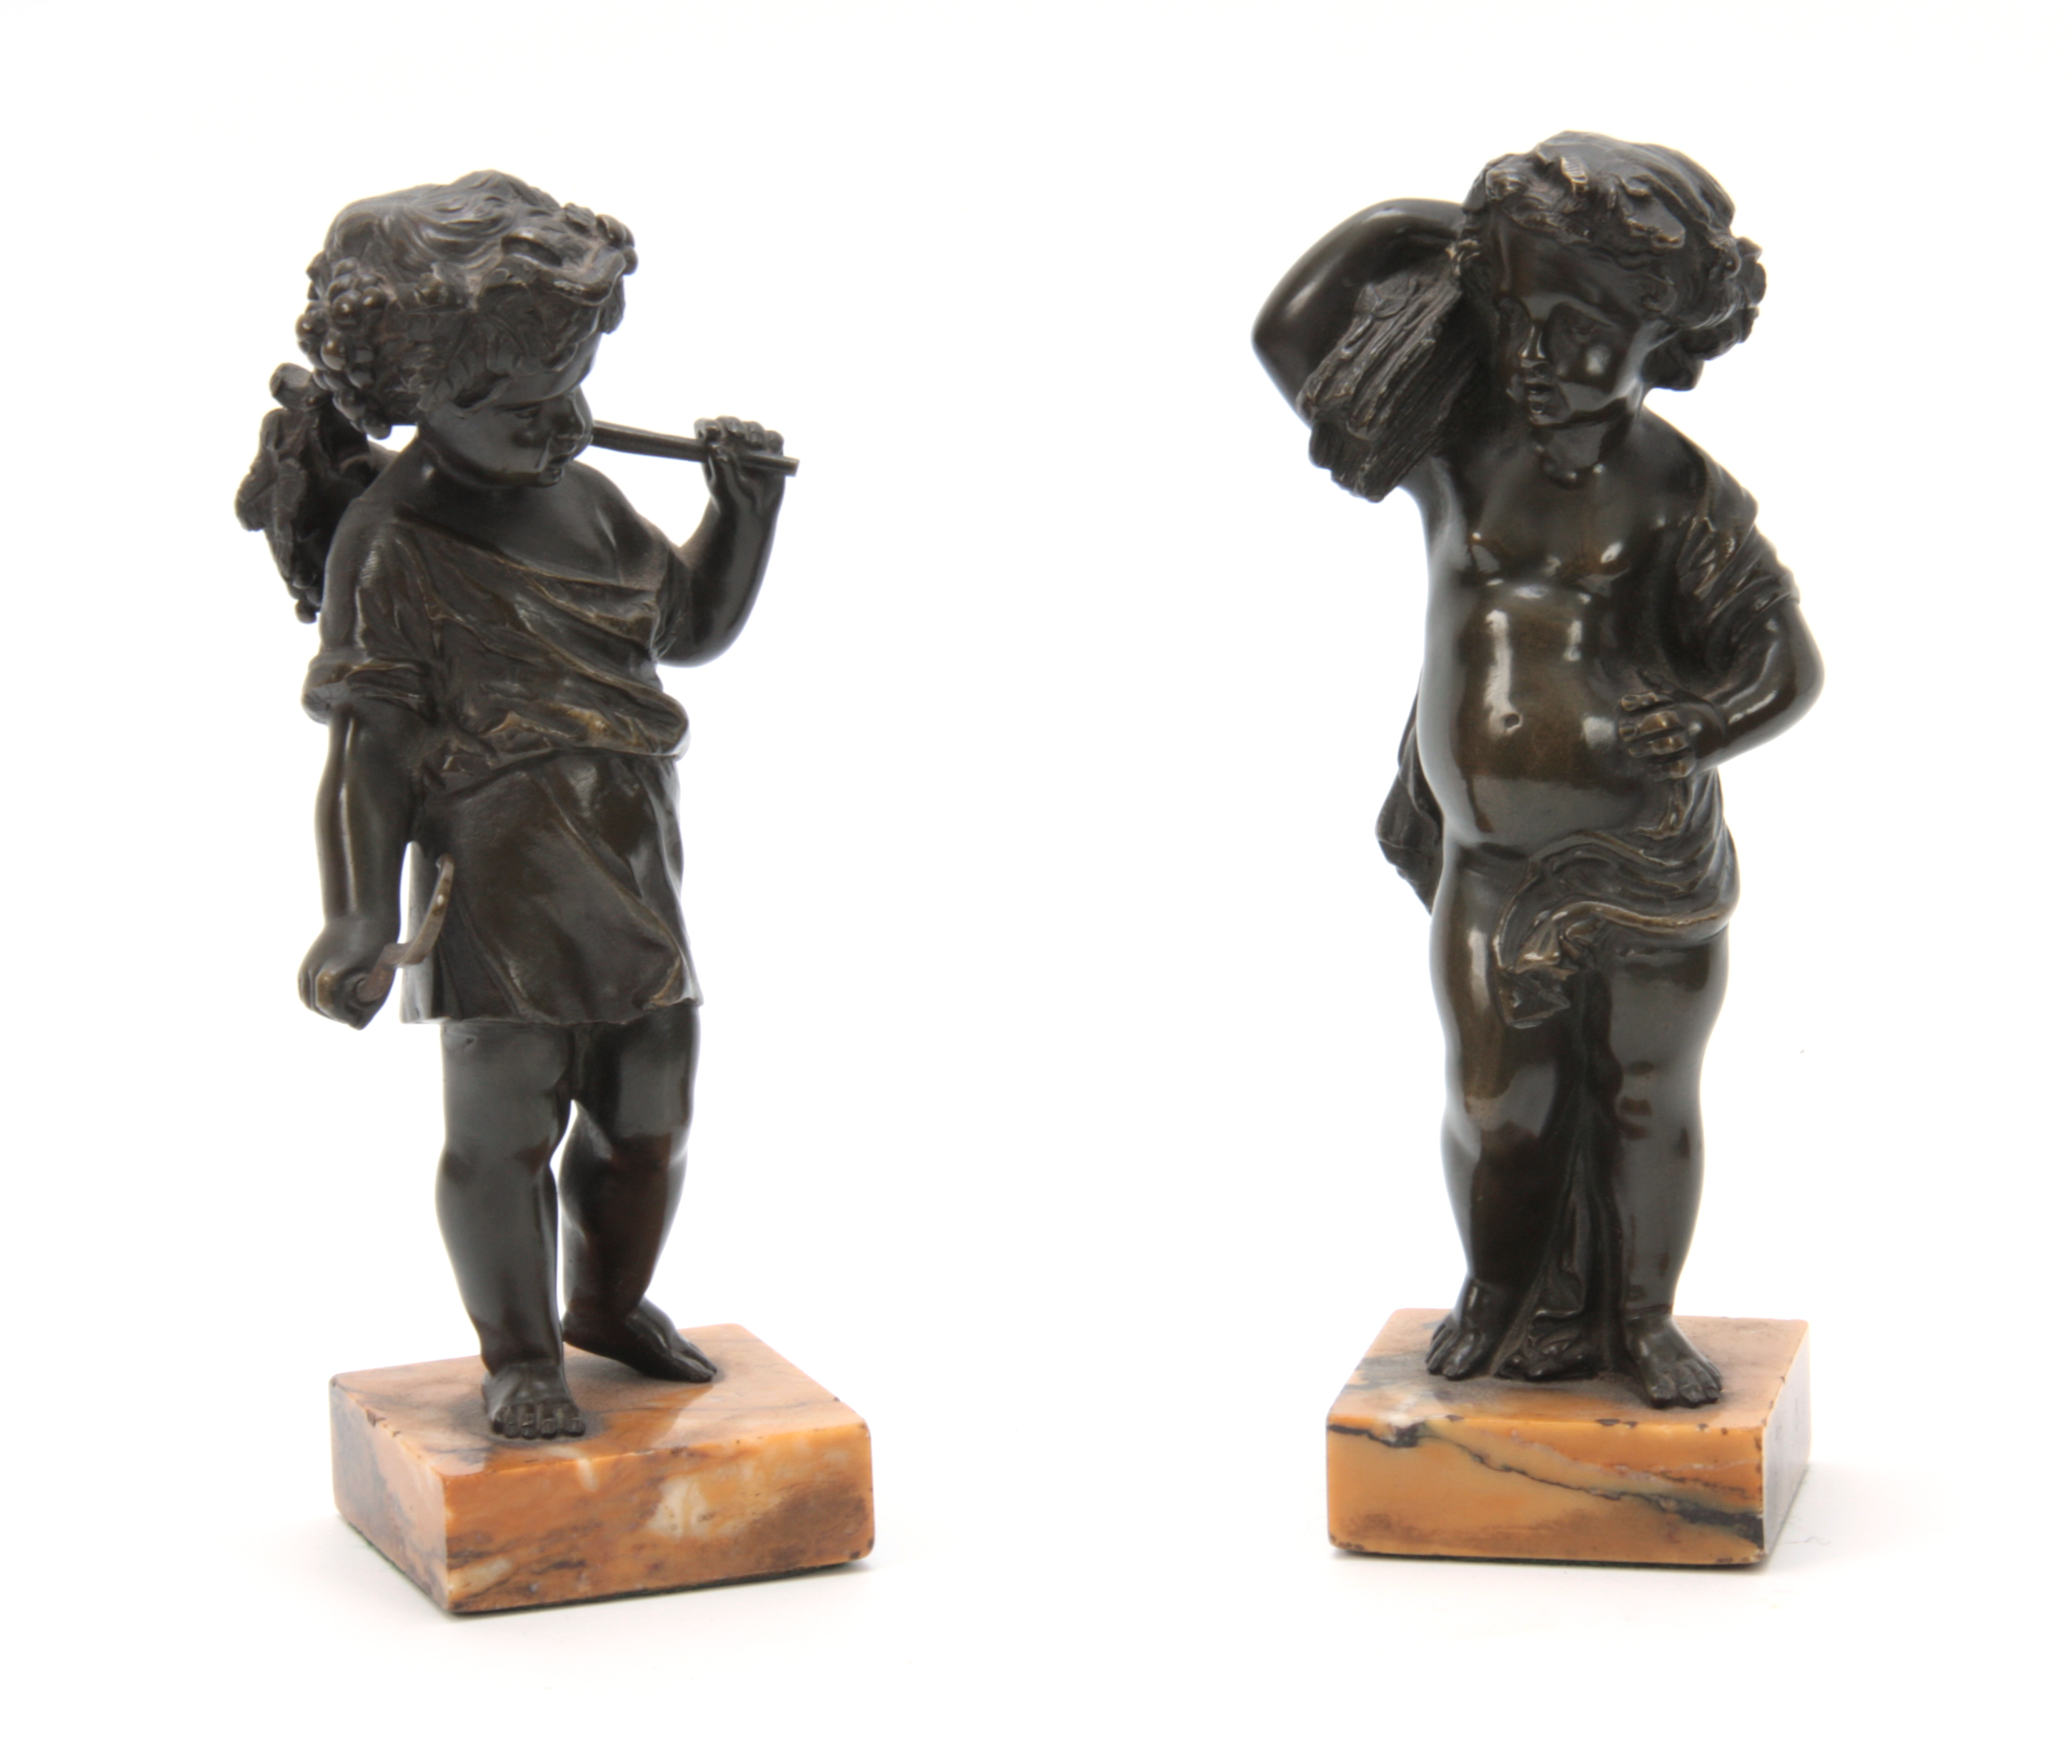 Lot 640 - A PAIR OF 19th CENTURY PATINATED BRONZE SCULPTURES modelled as putti harvesters mounted on Sienna